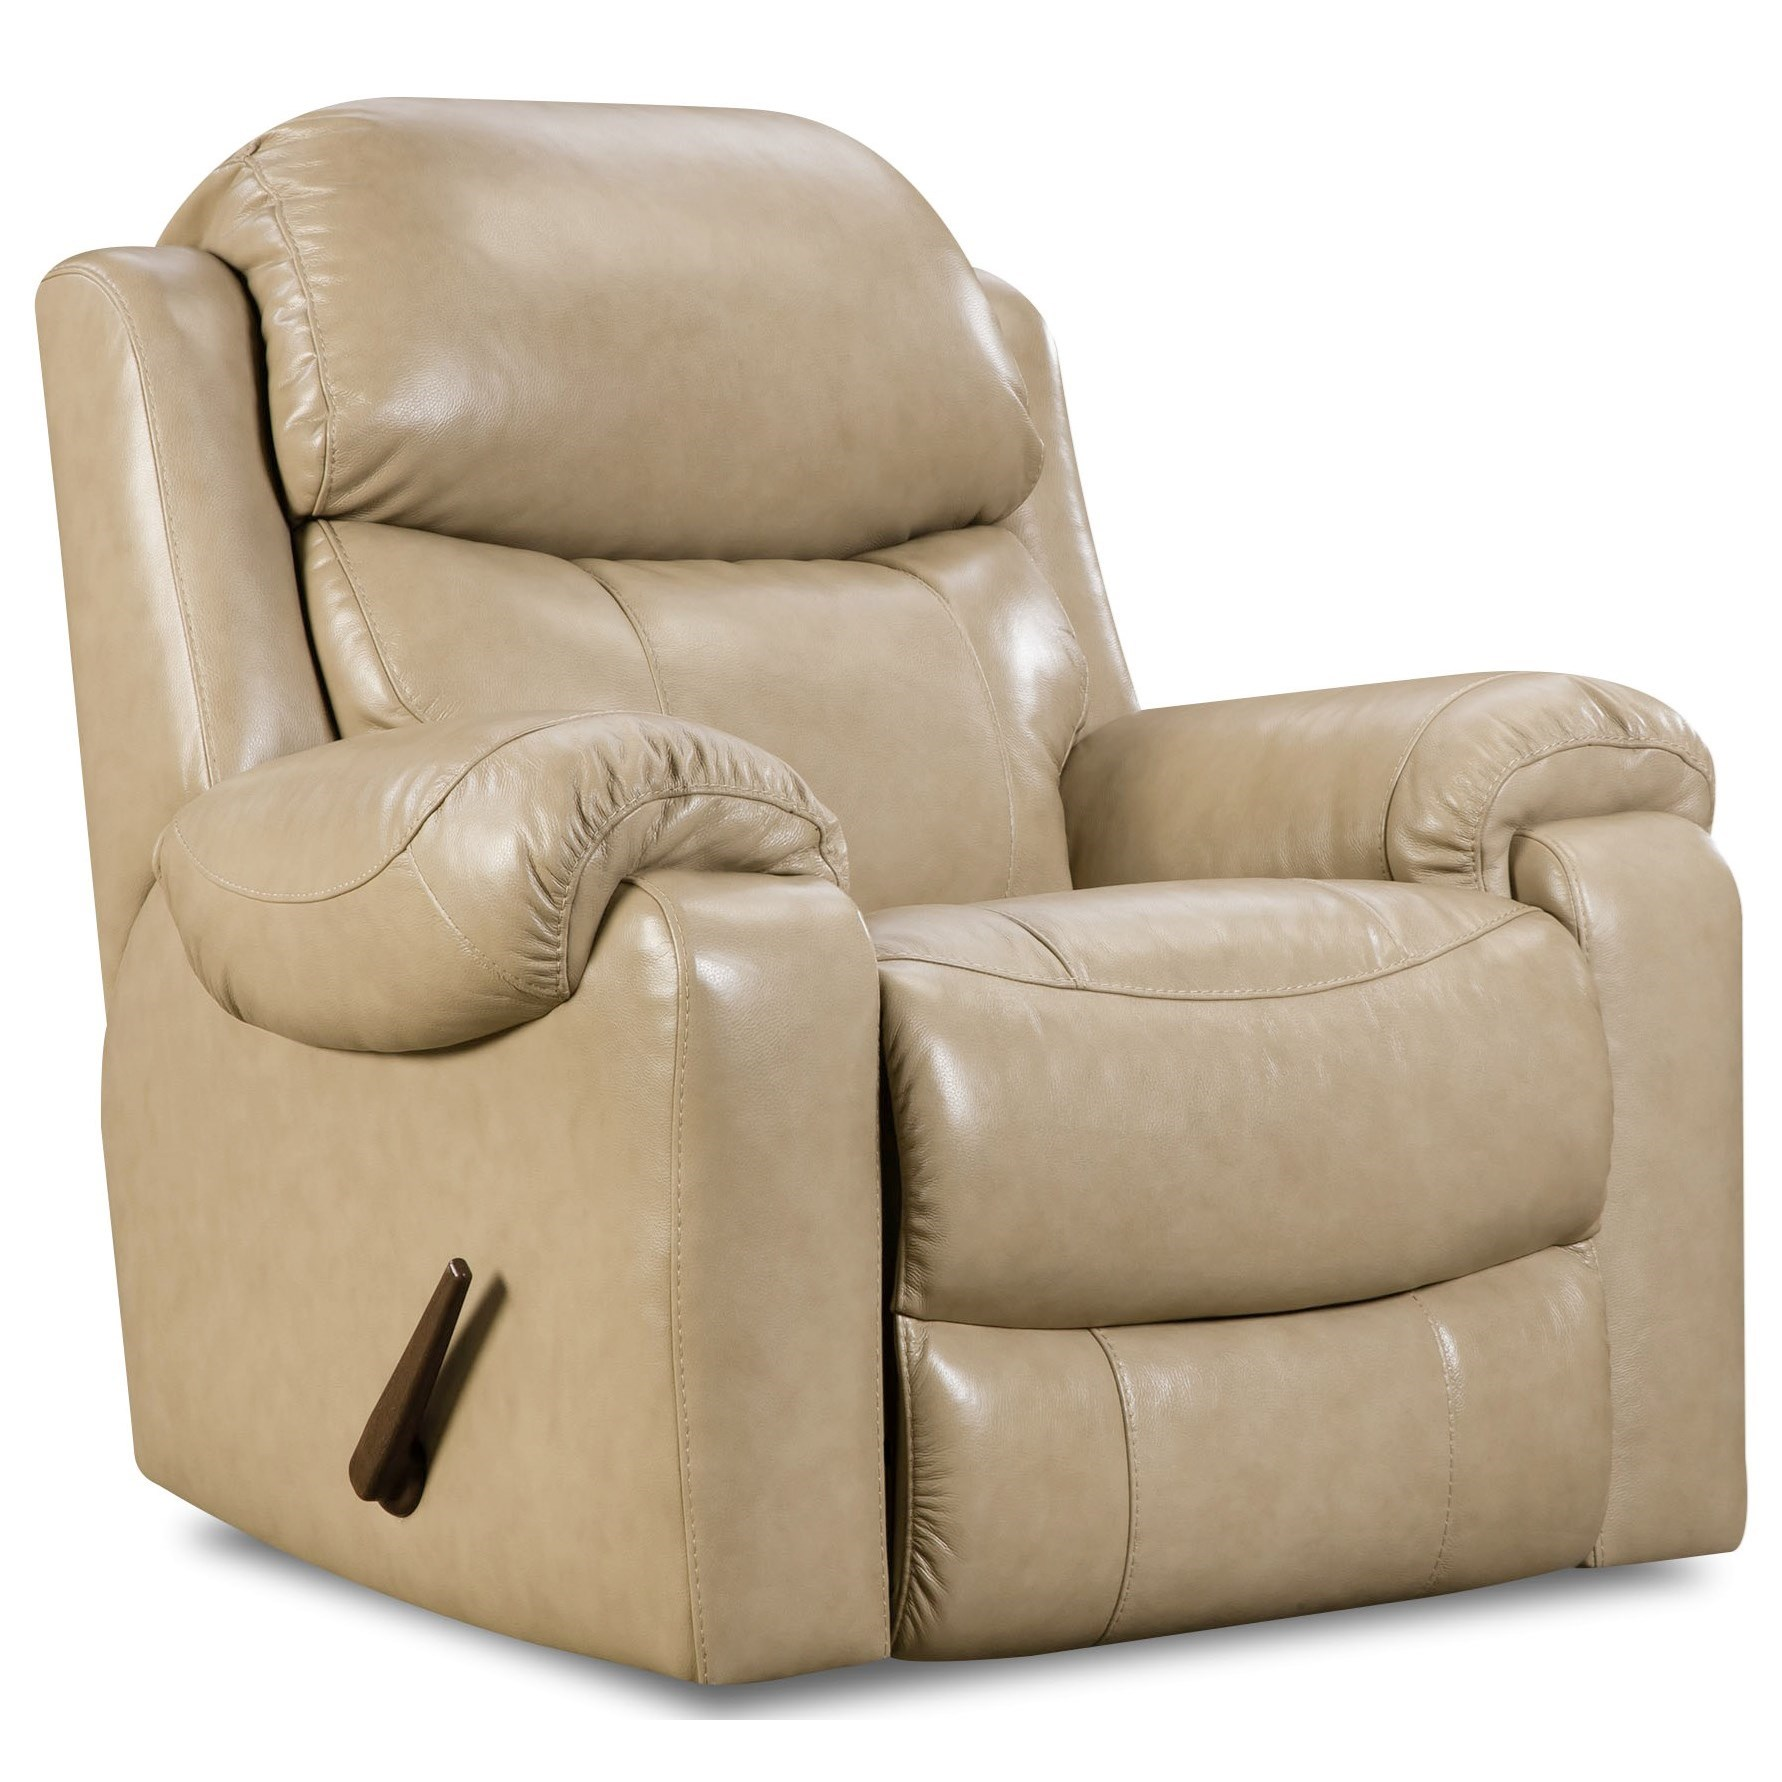 HomeStretch 135 Collection Power Rocker Recliner - Item Number: 135-98-10